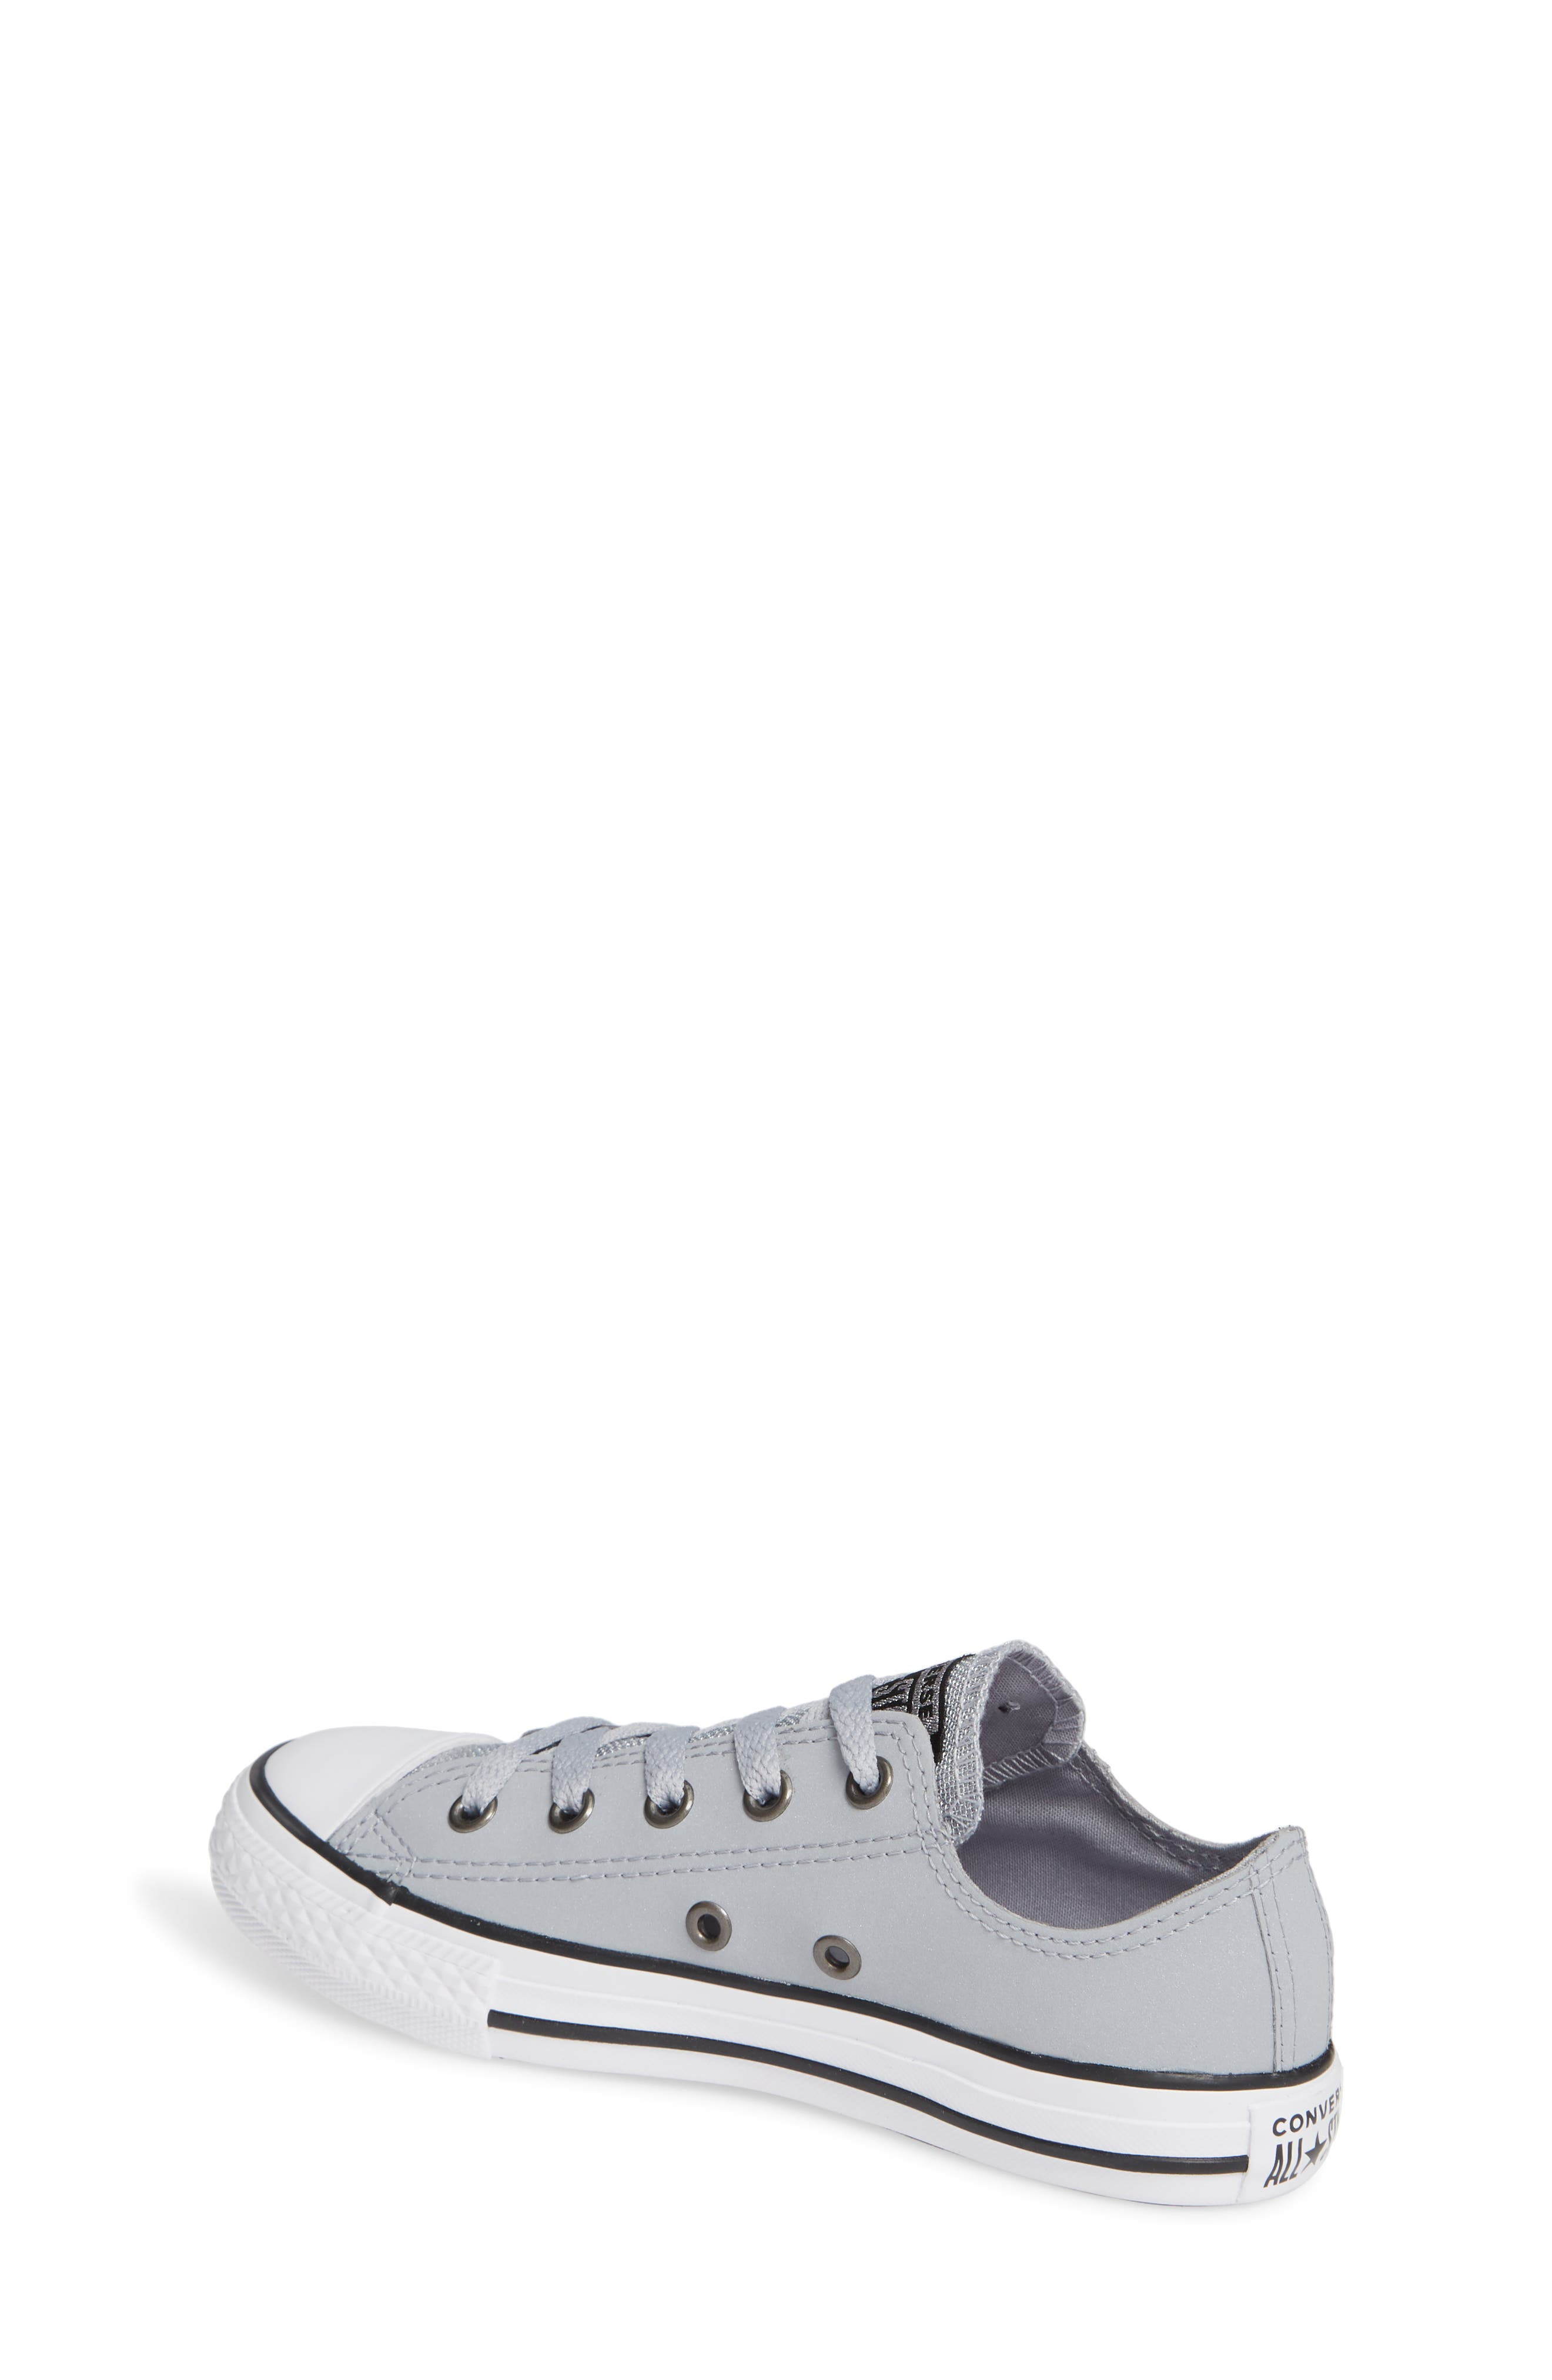 All Star<sup>®</sup> Metallic Low Top Sneaker,                             Alternate thumbnail 2, color,                             WOLF GREY